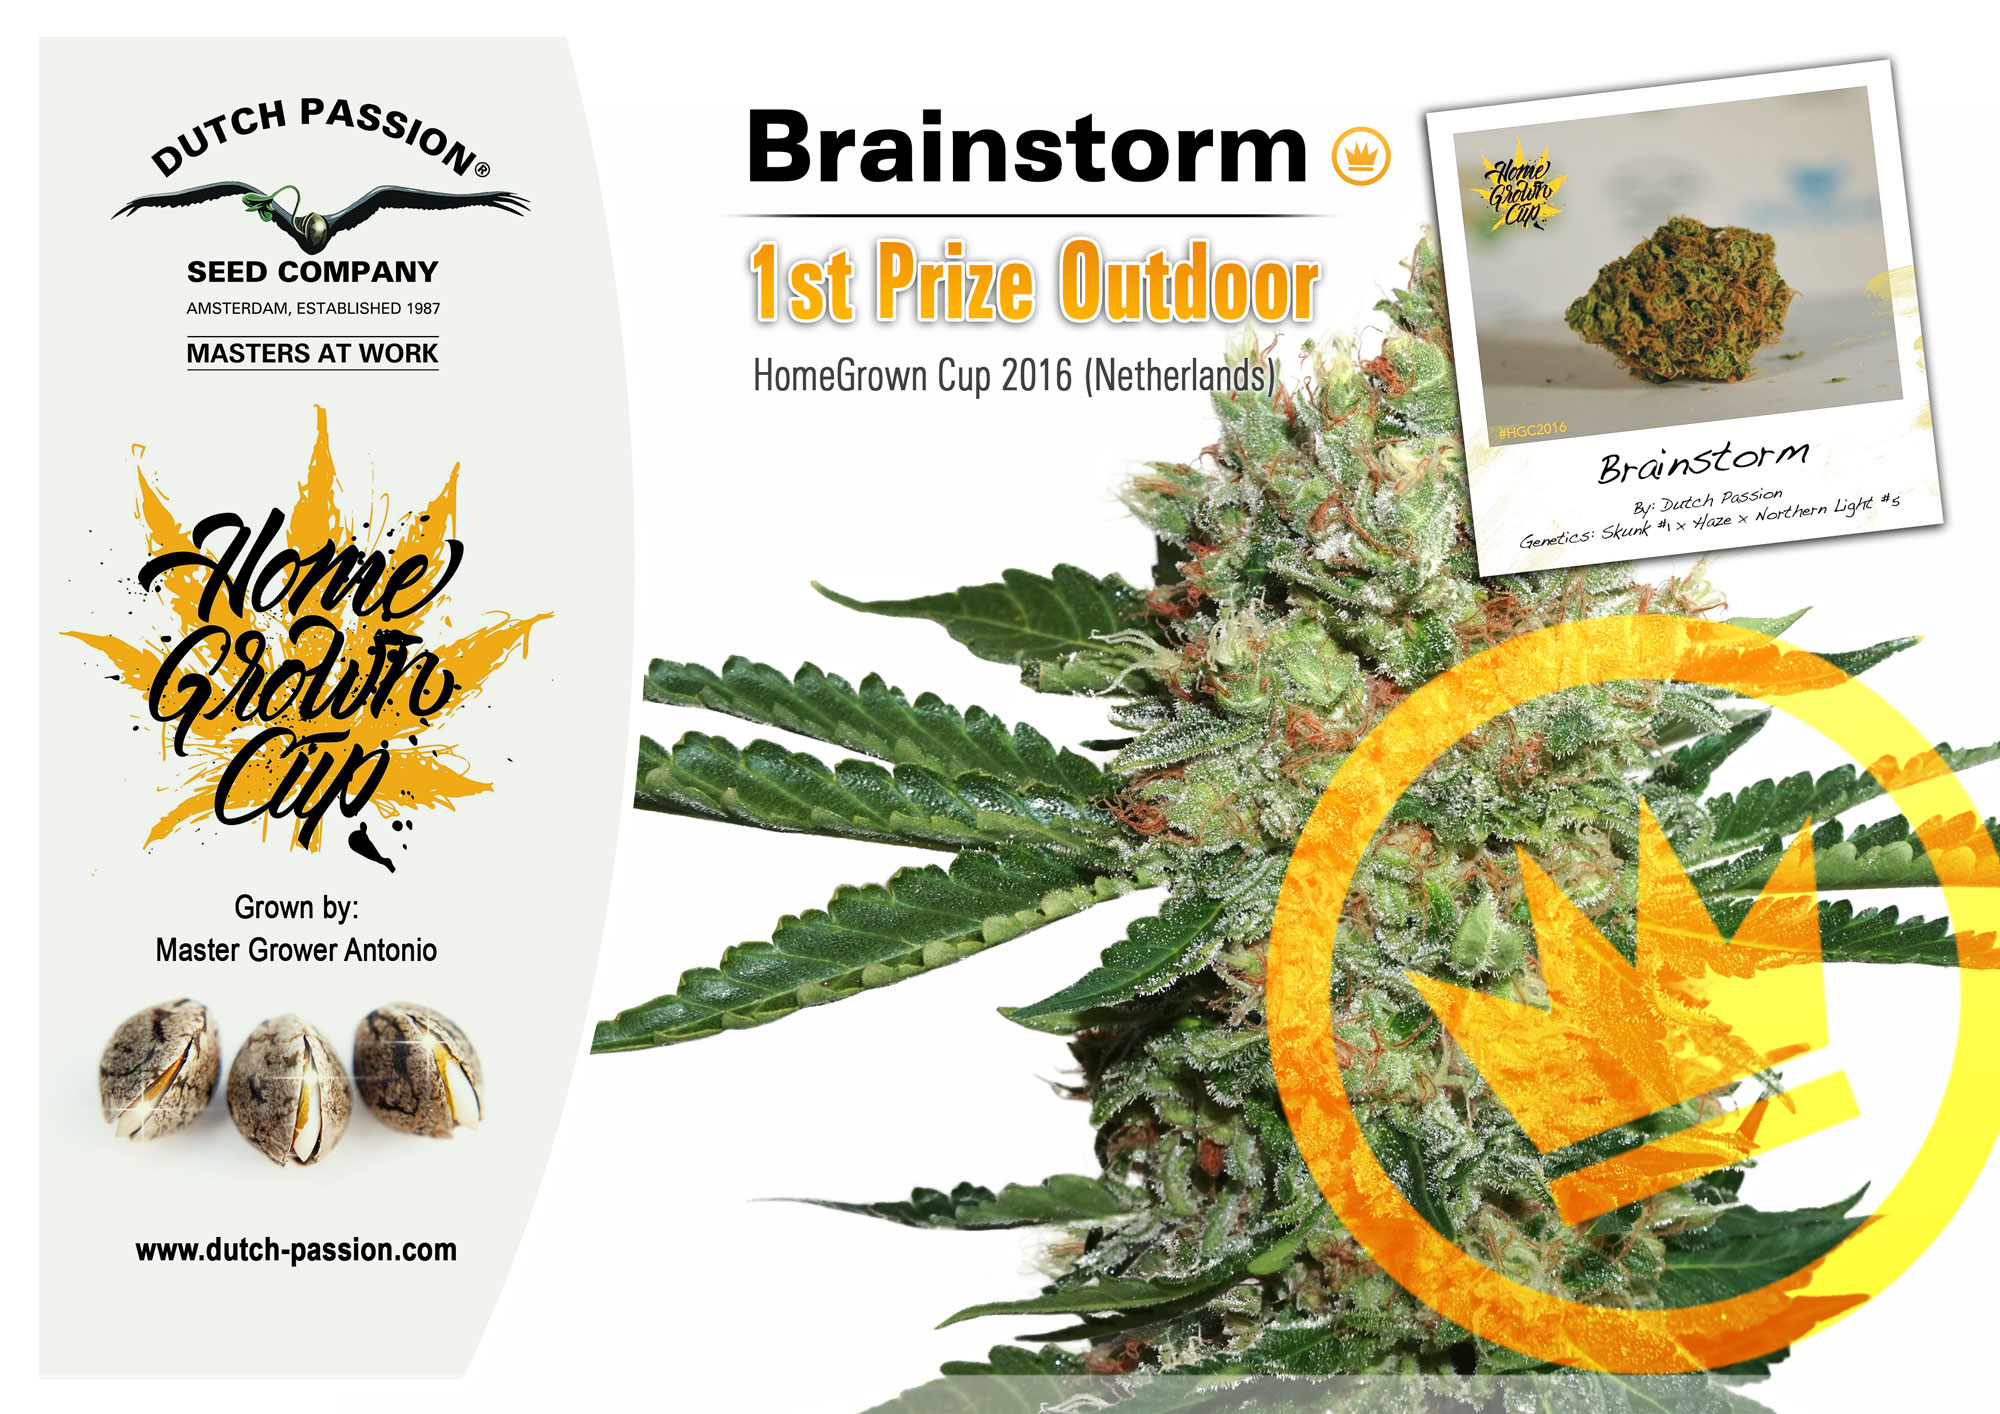 Dutch Passion Brainstorm wins First Prize at Home Grown Cup